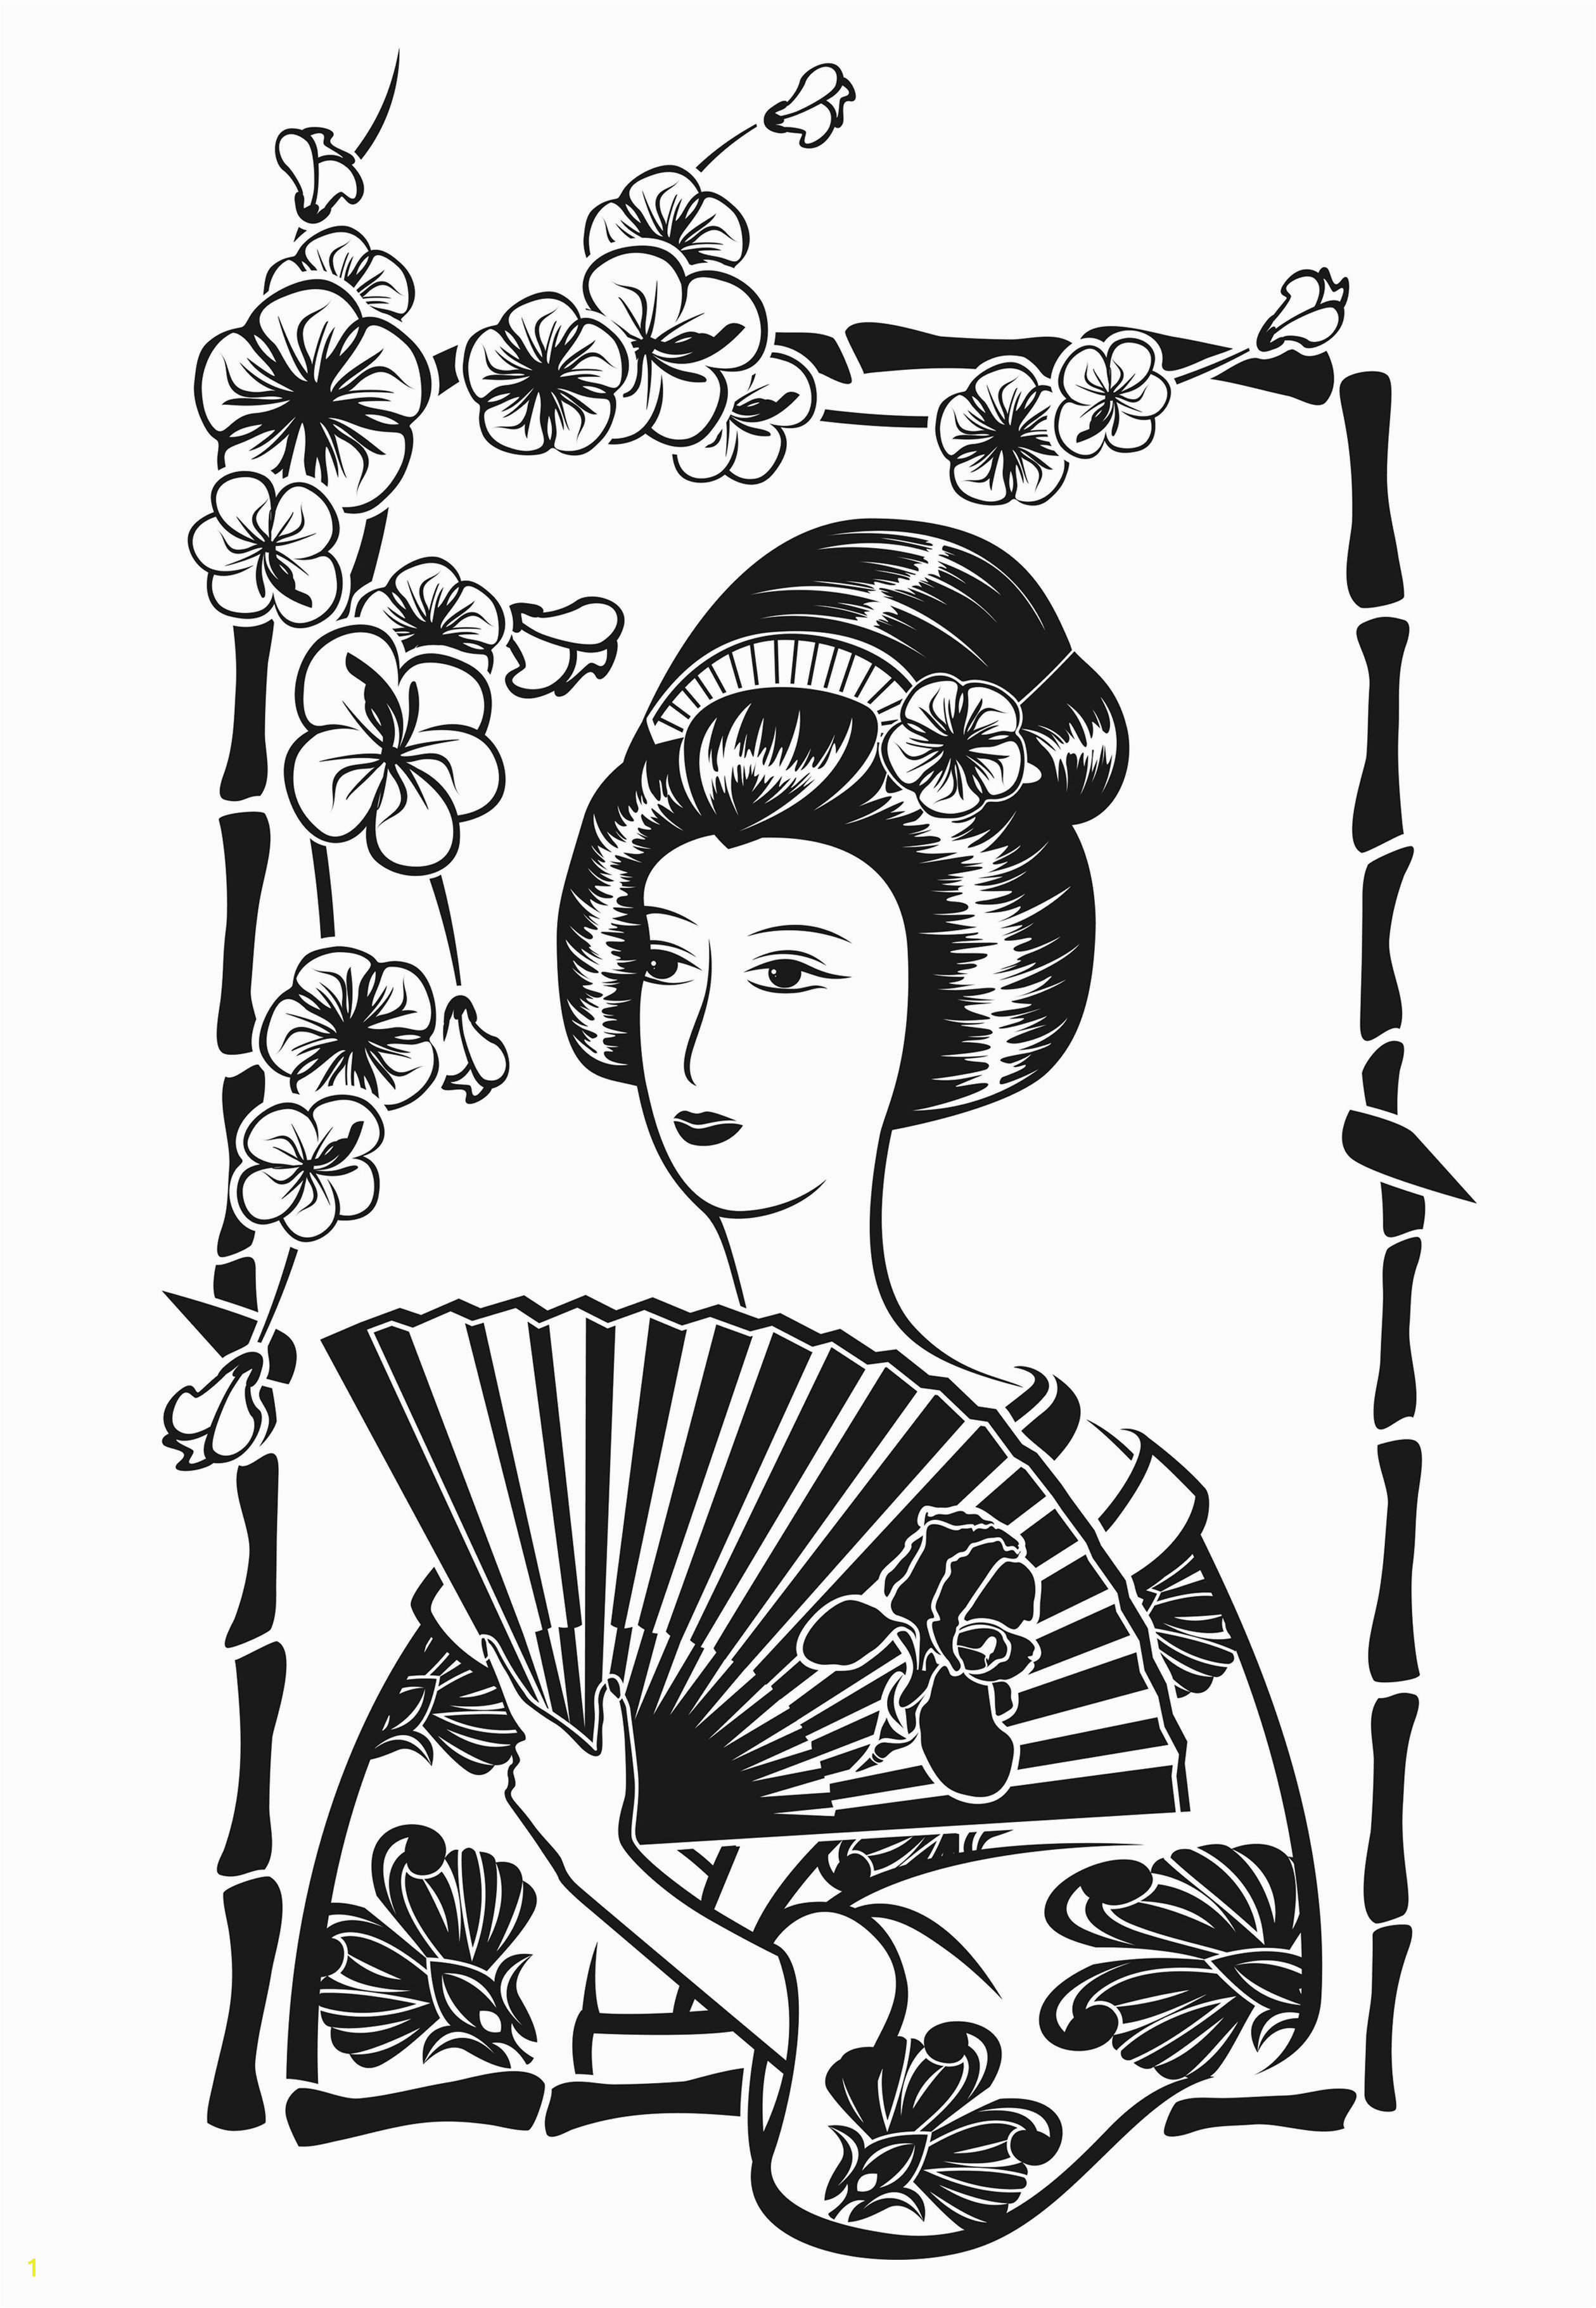 Printable Geisha Coloring Pages Free Coloring Page Coloring Adult Japan Geisha with Fan by Krystsina